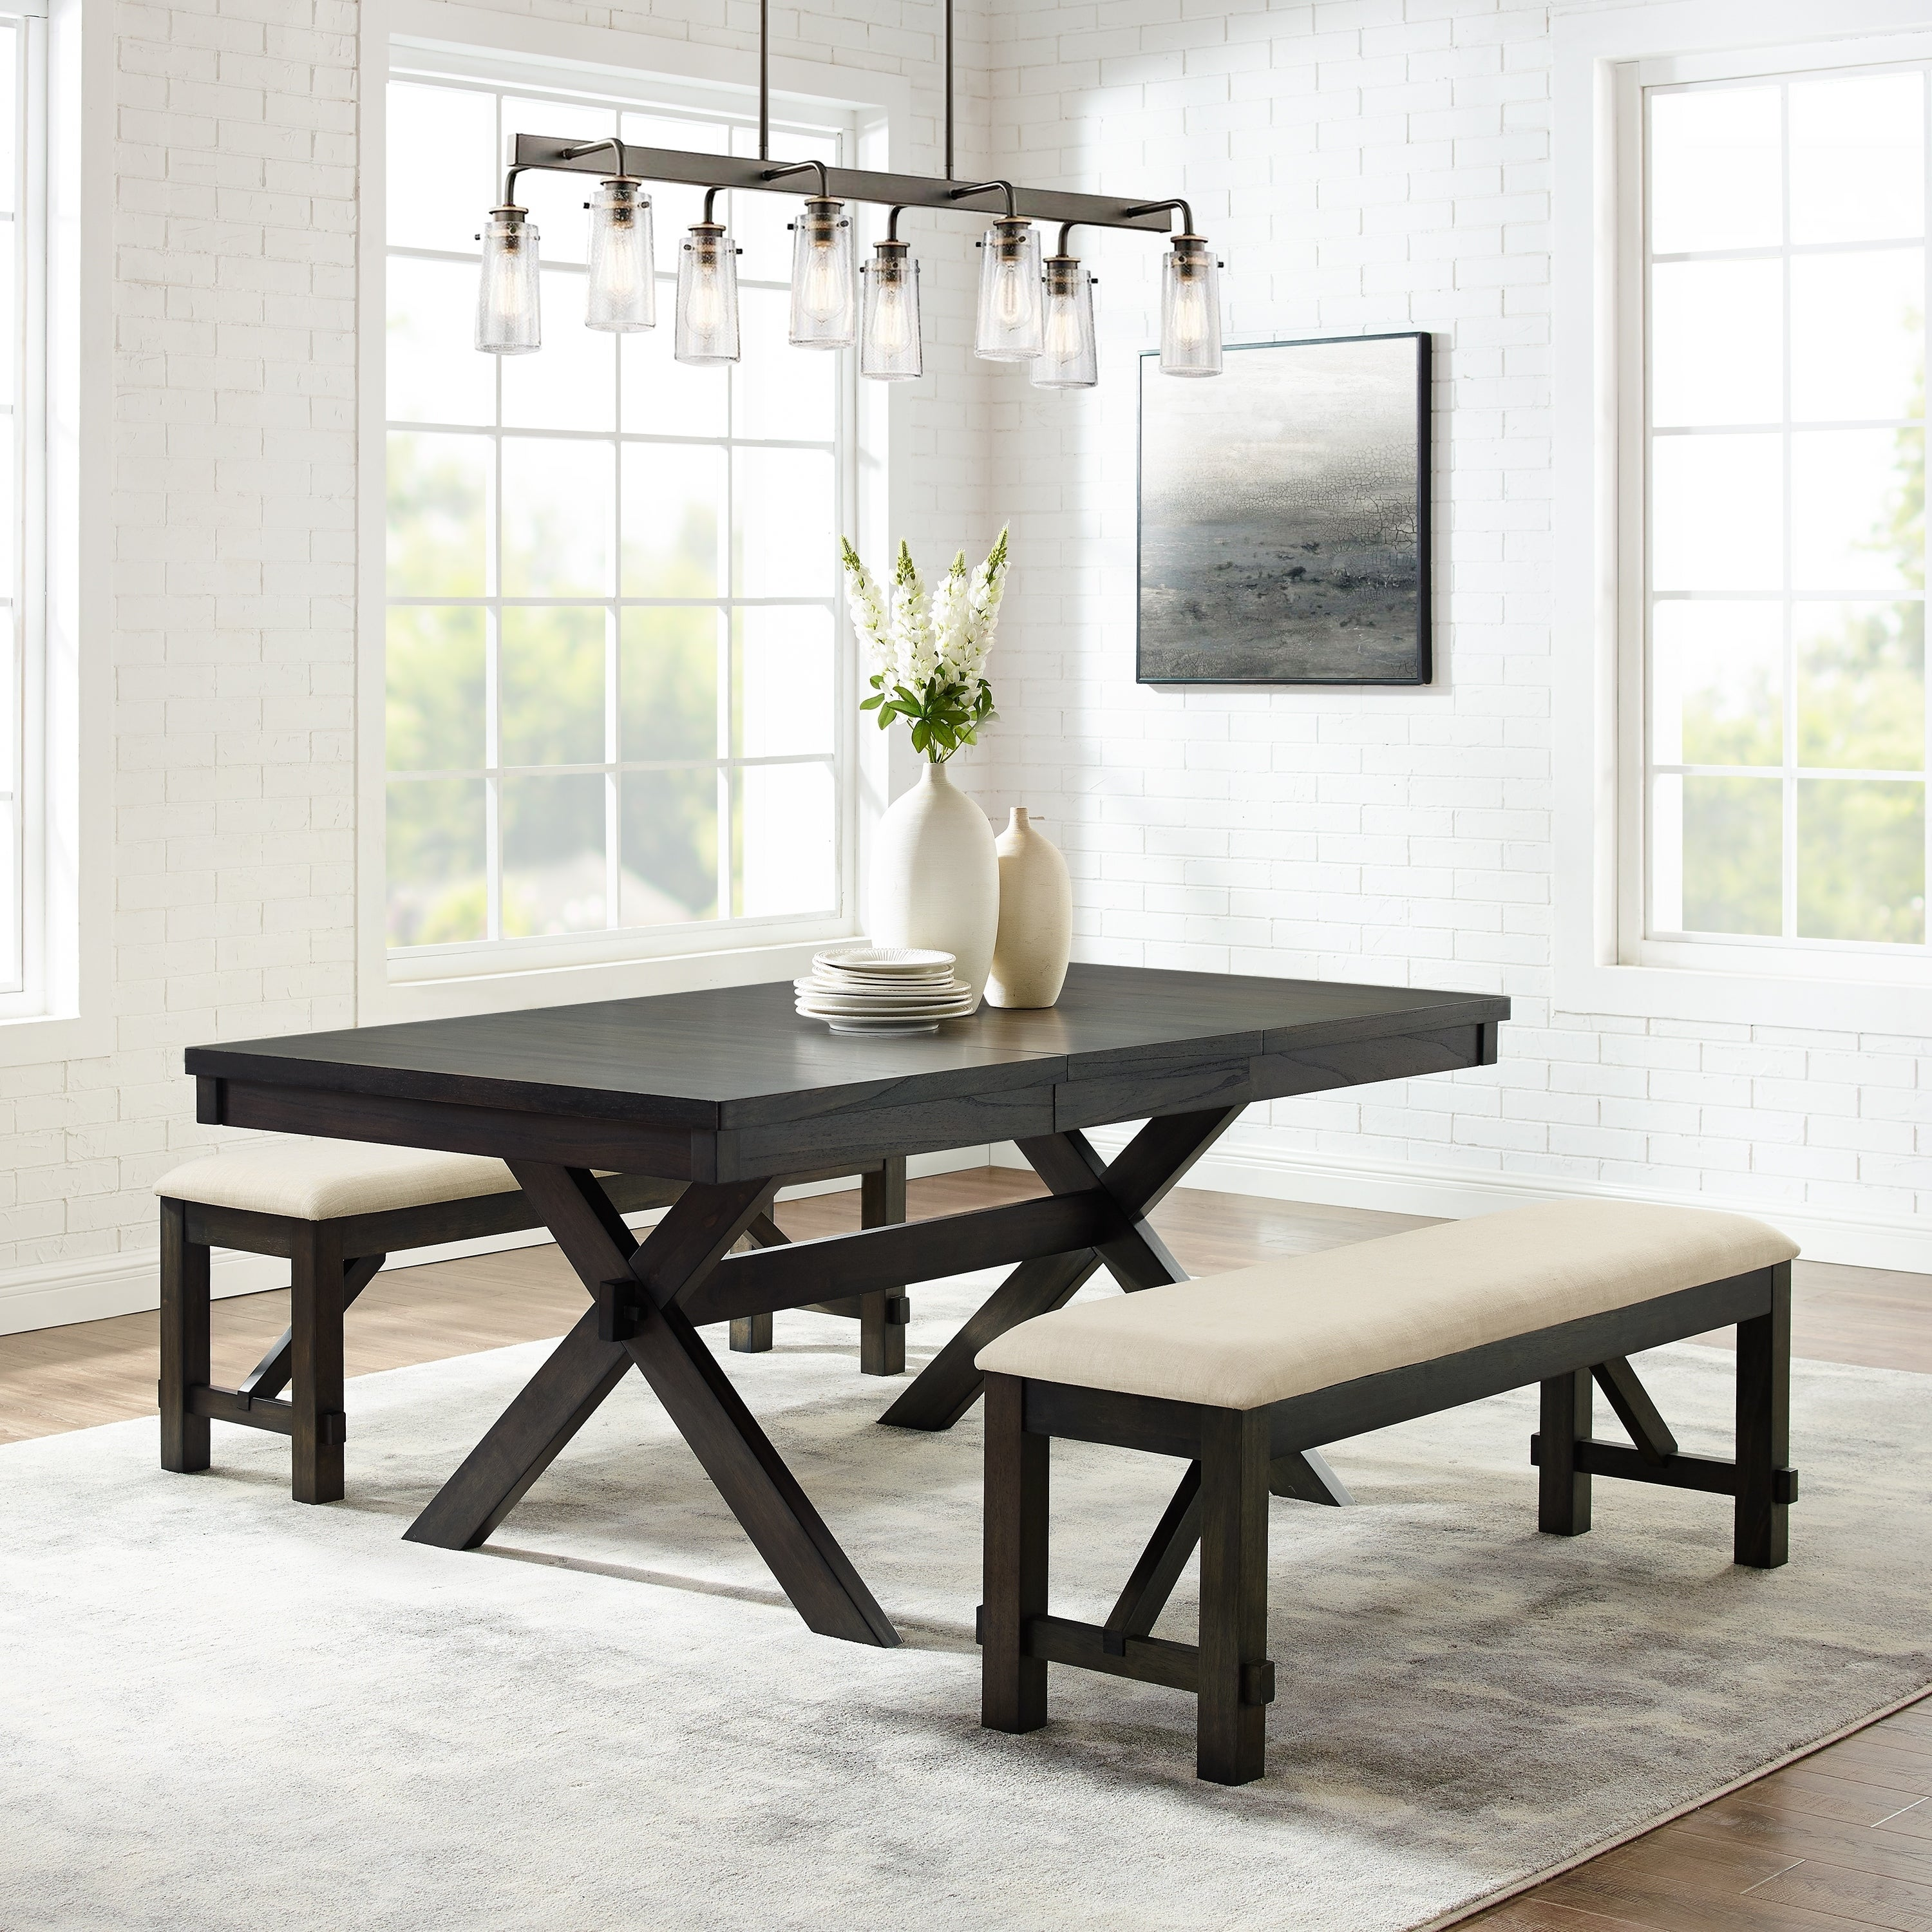 Hayden 3pc Dining Set Slate Table 2 Benches